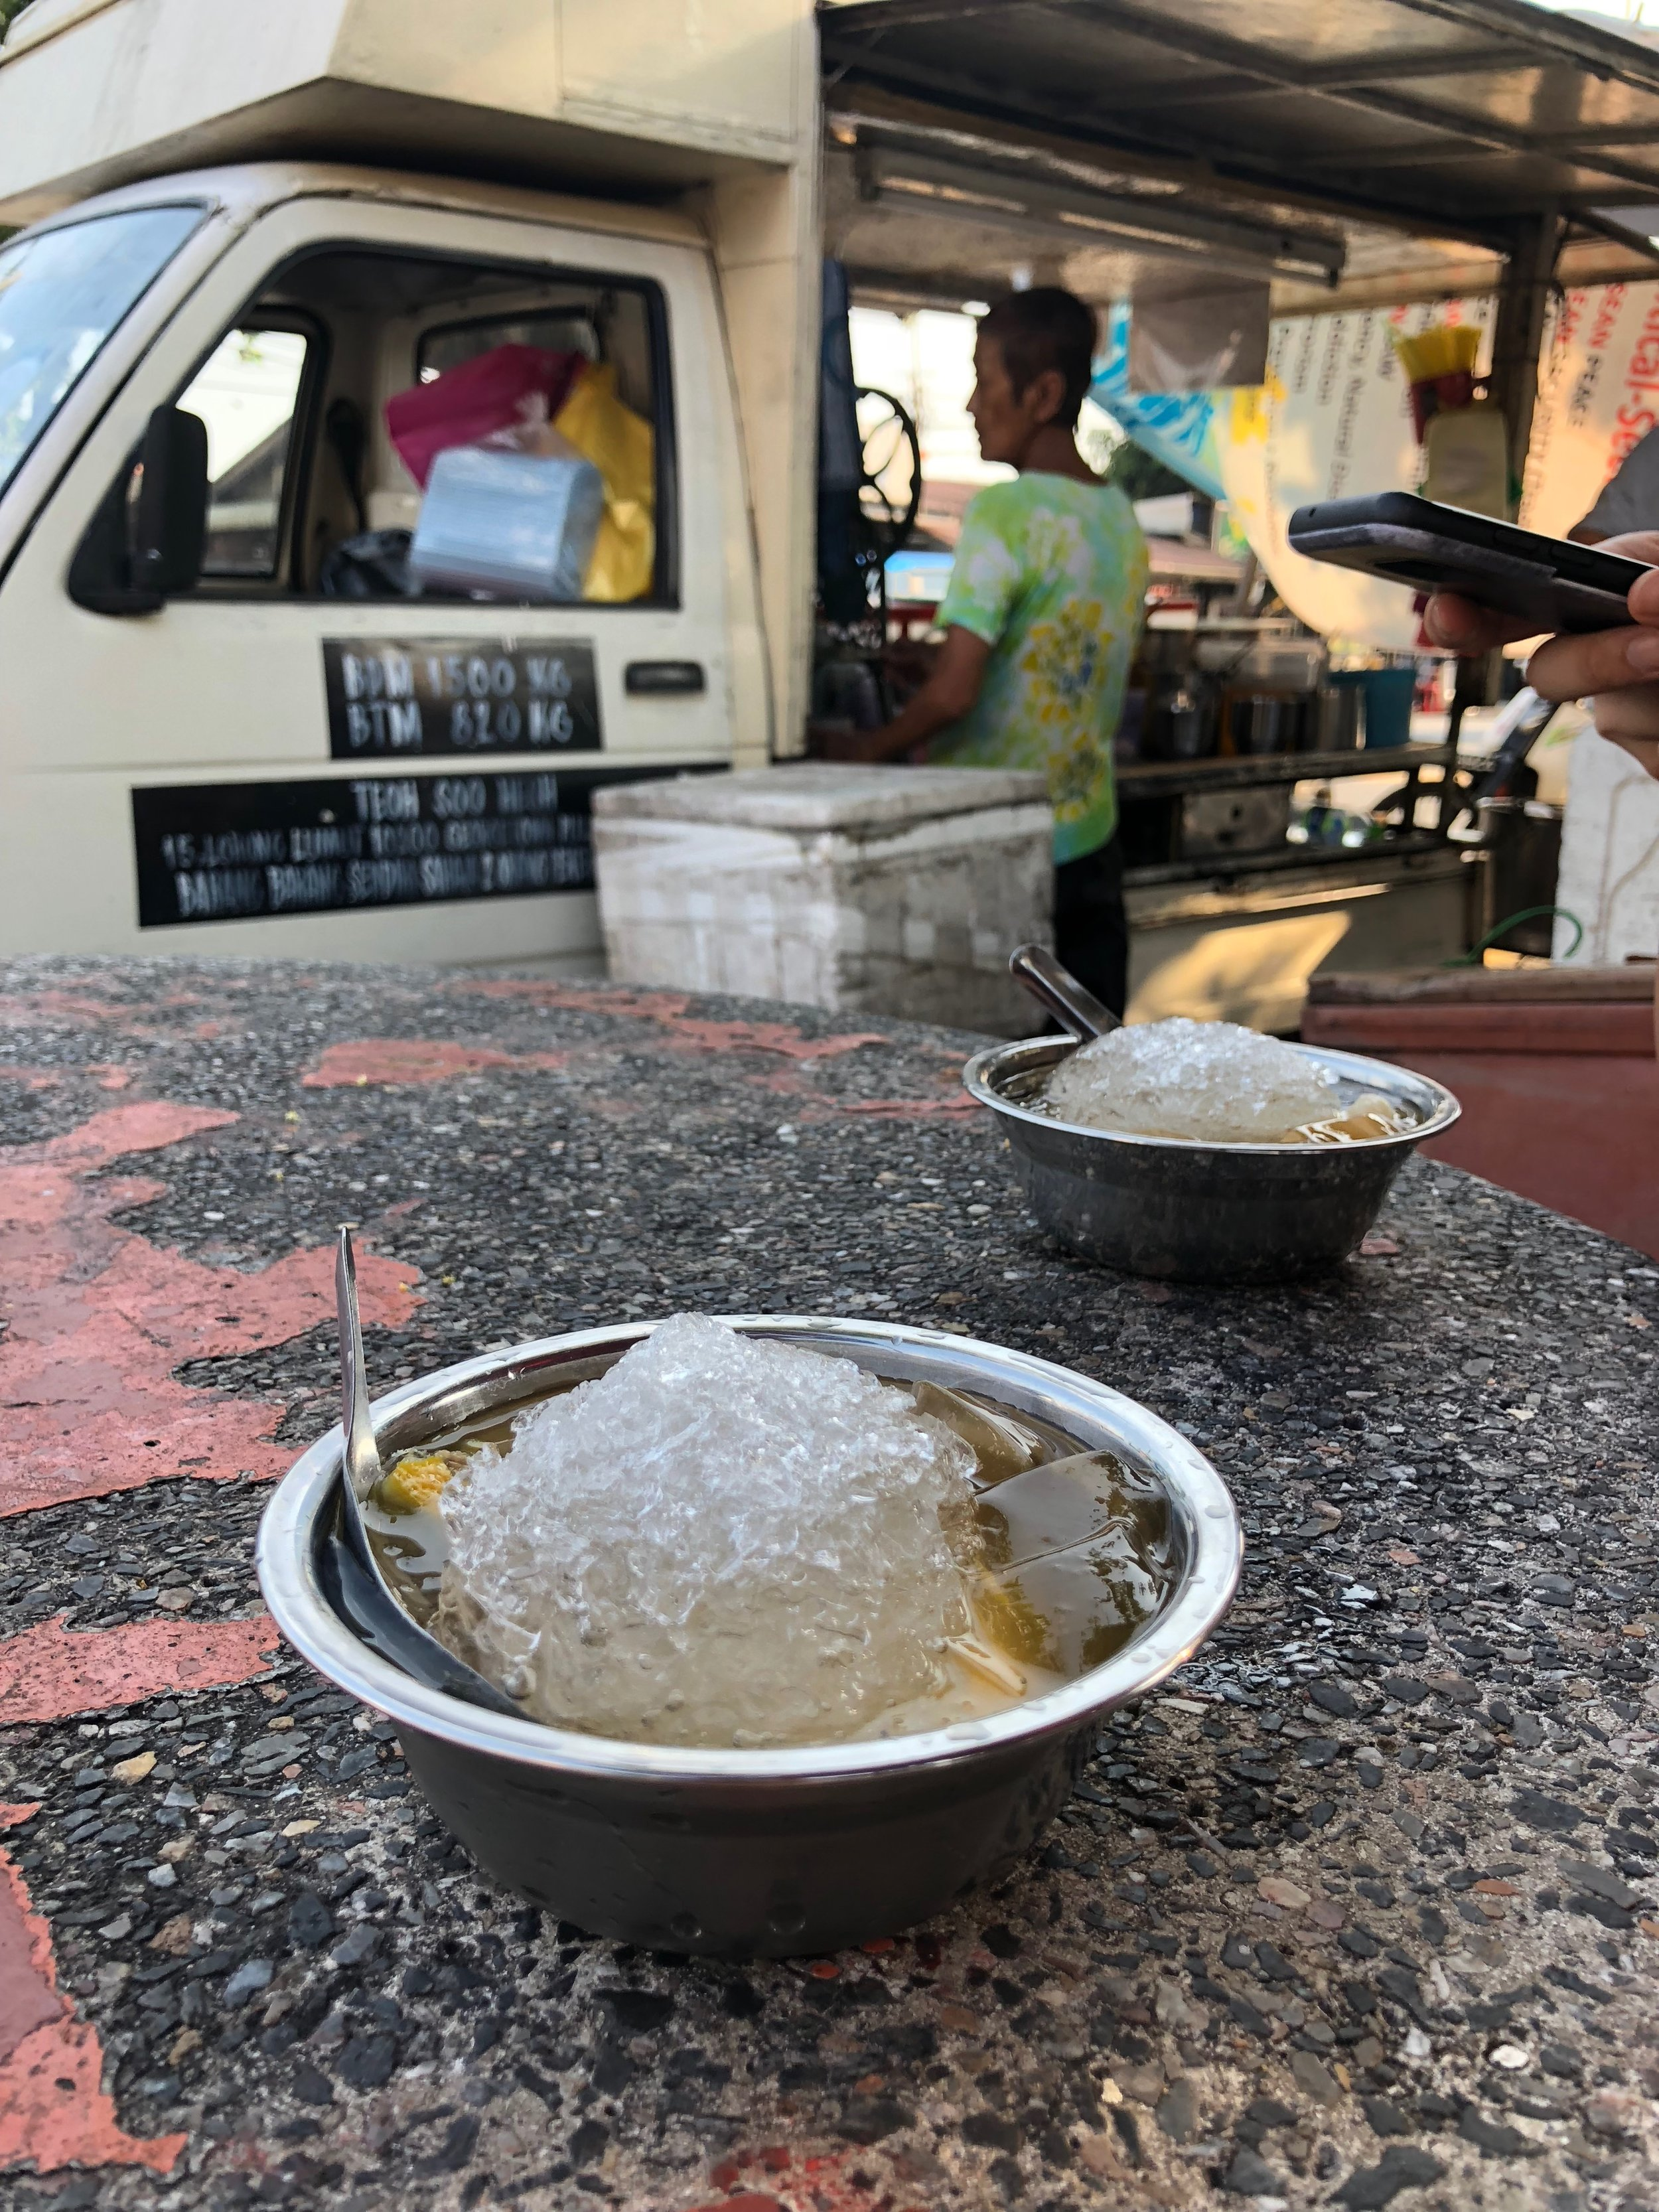 Orh kioh - shaved ice with jelly, a slice of lime, and longan, a lychee-like fruit—a refreshing treat from Penang. Behind you can see the food cart selling this icy treat.